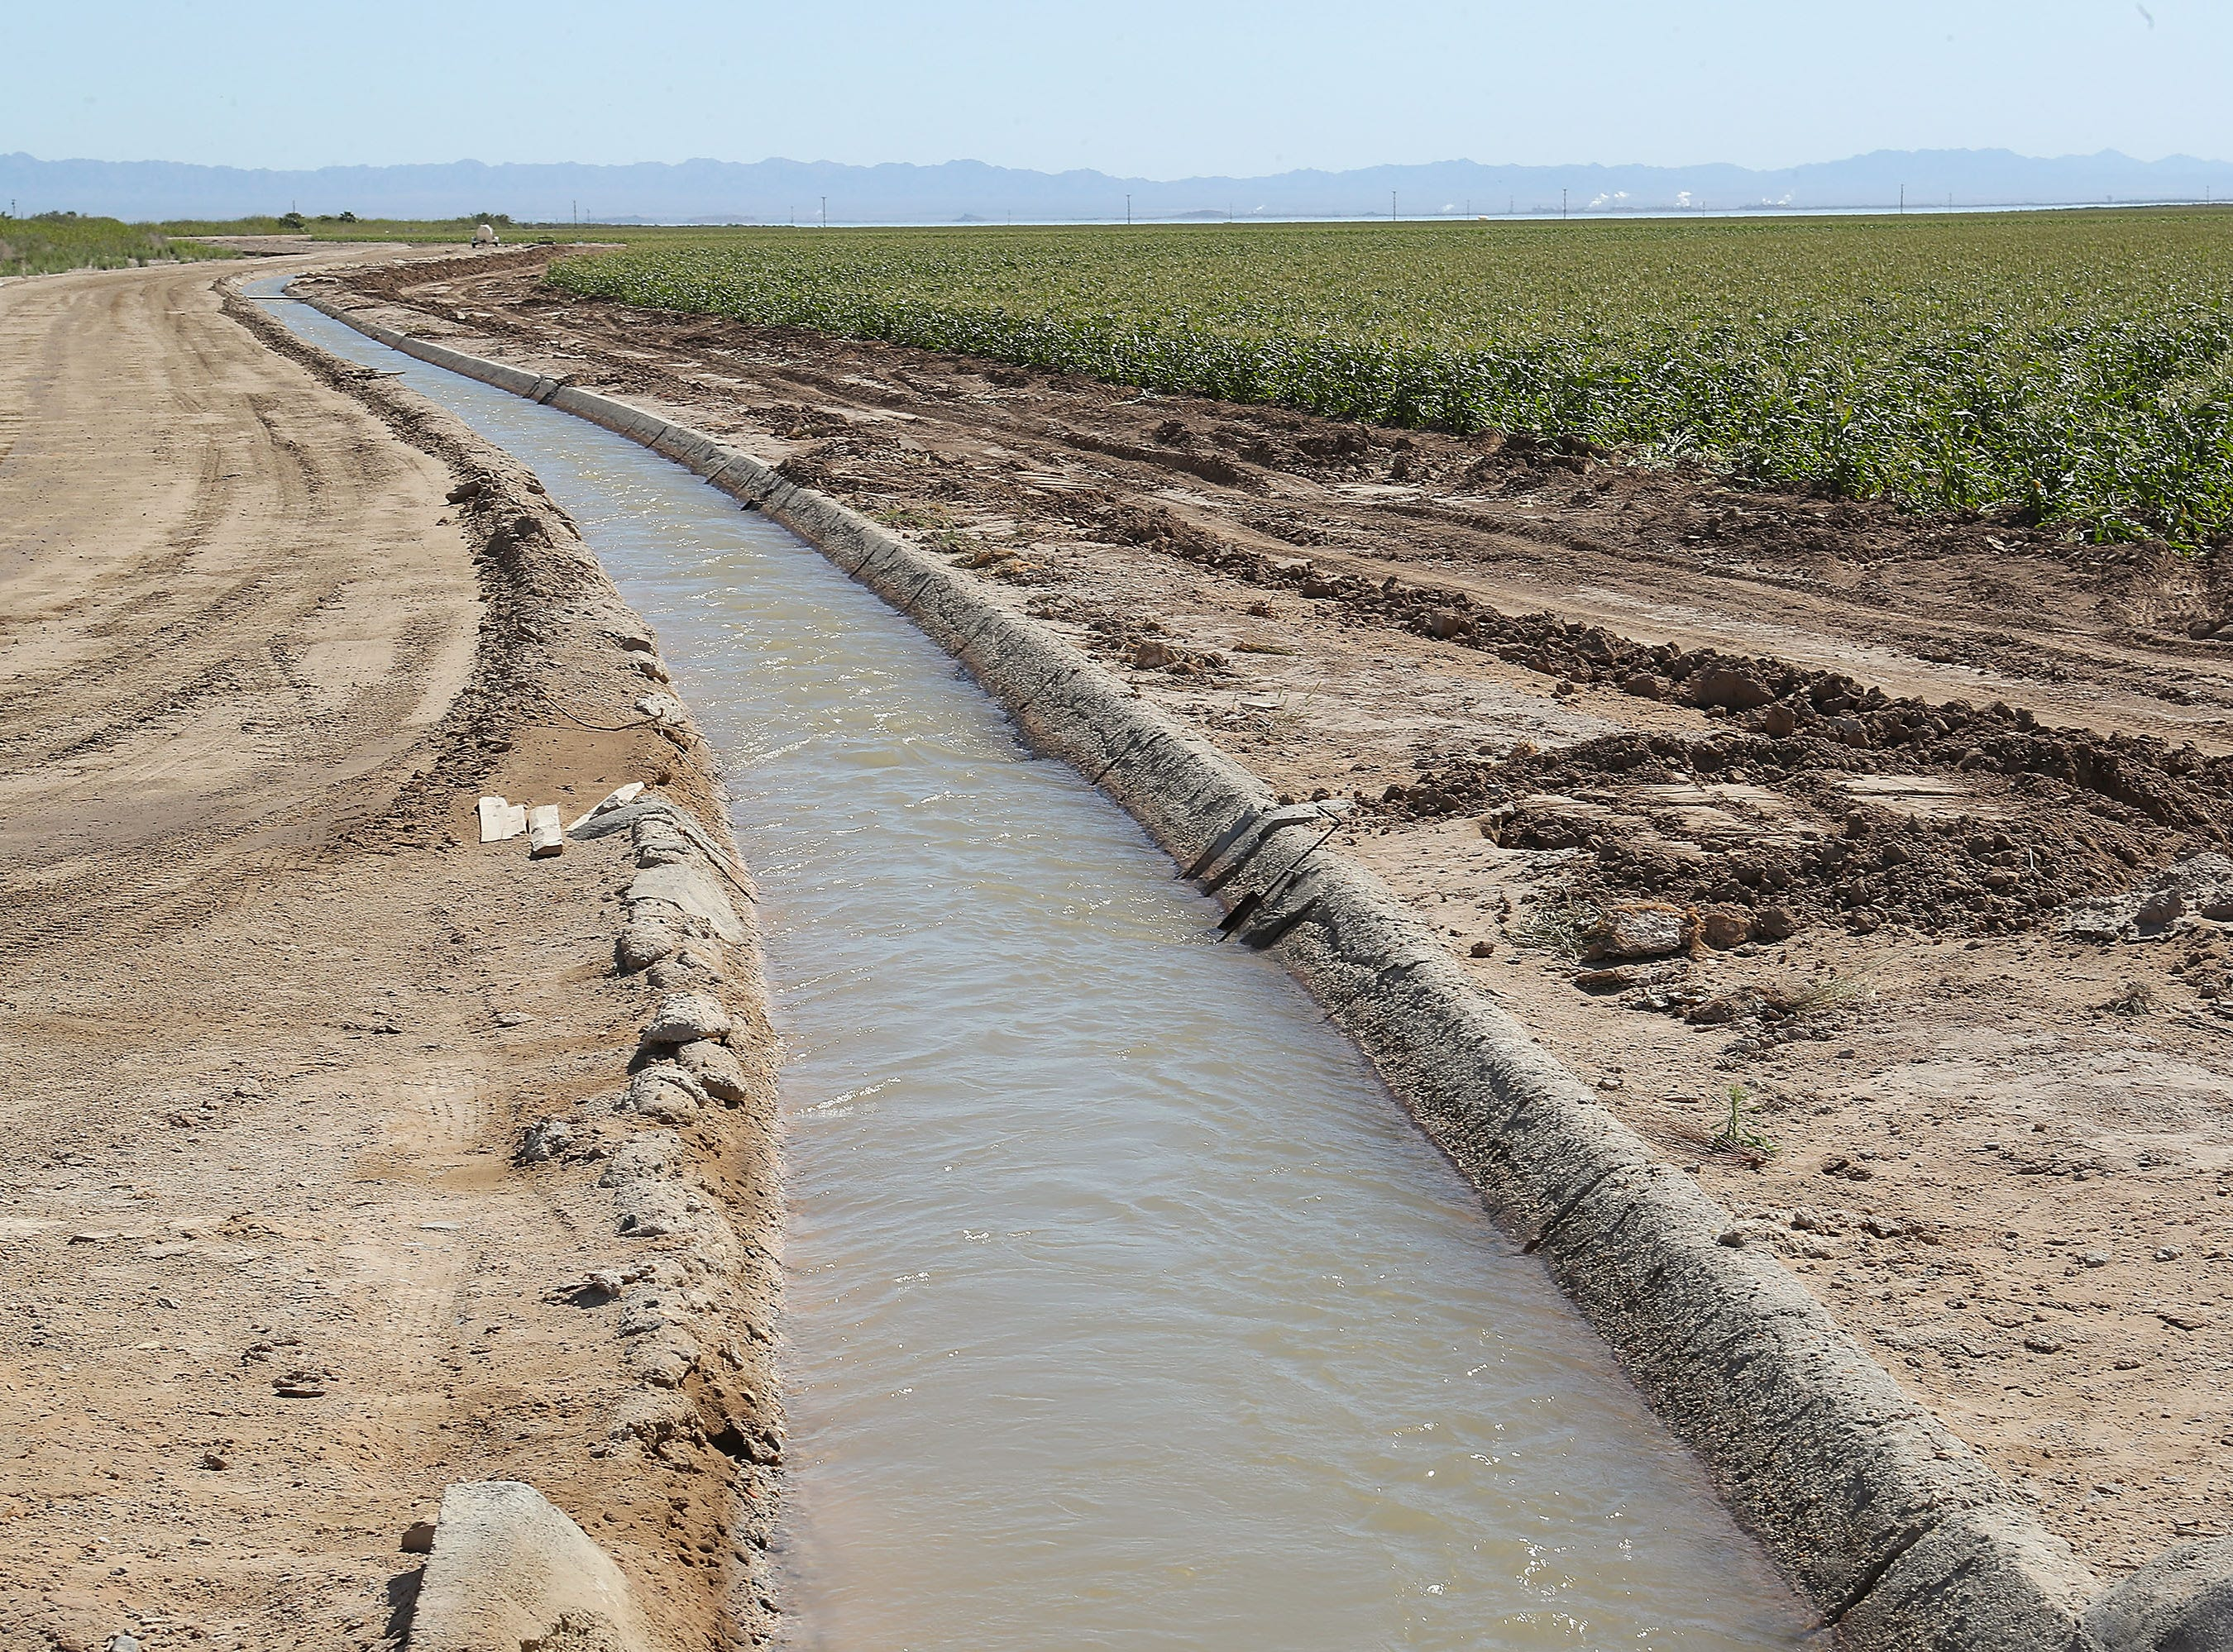 A canal carries water through agricultural fields on the Elmore Desert Ranch near Brawley, April 11, 2019.